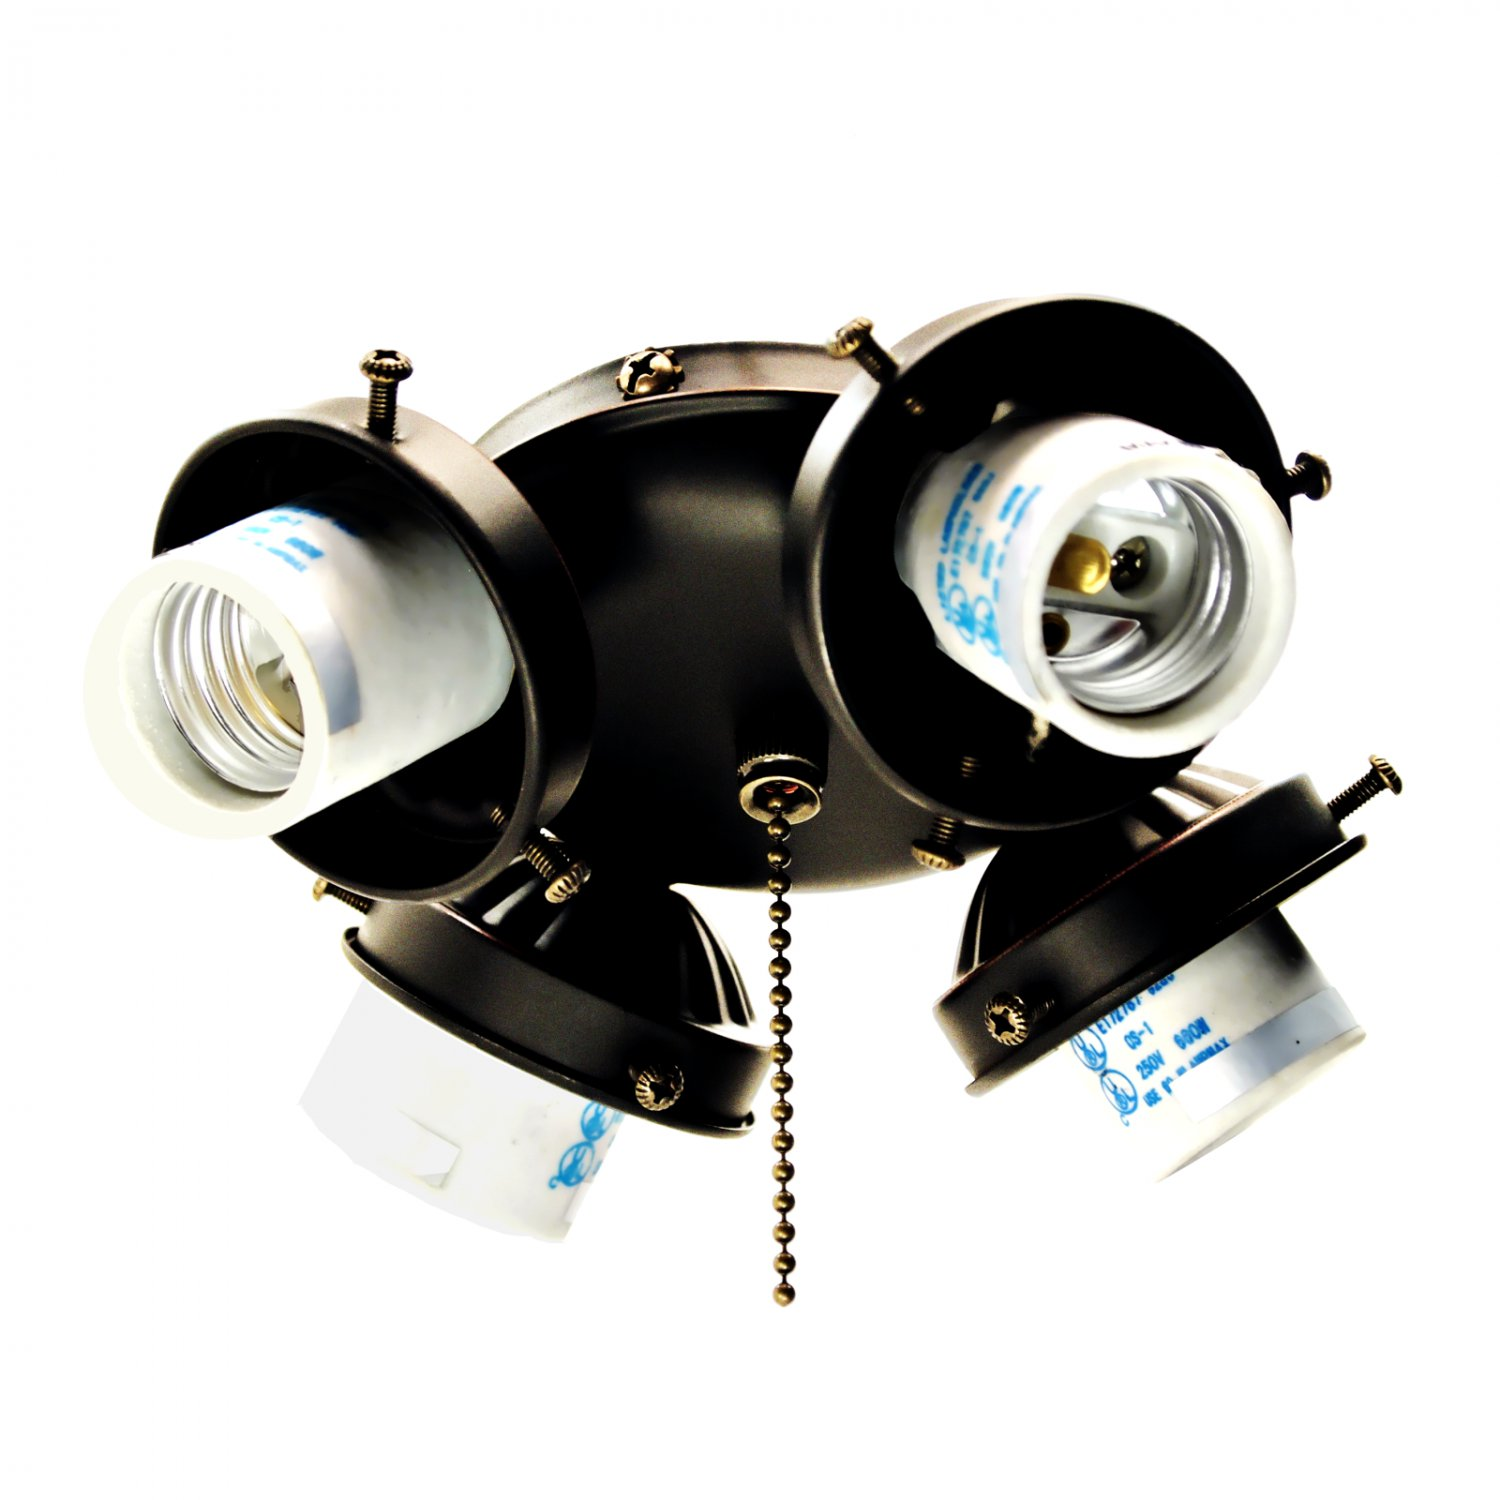 Pendant Light Kit With Switch : Ceiling fan light kit lamp turtle fitter with pull